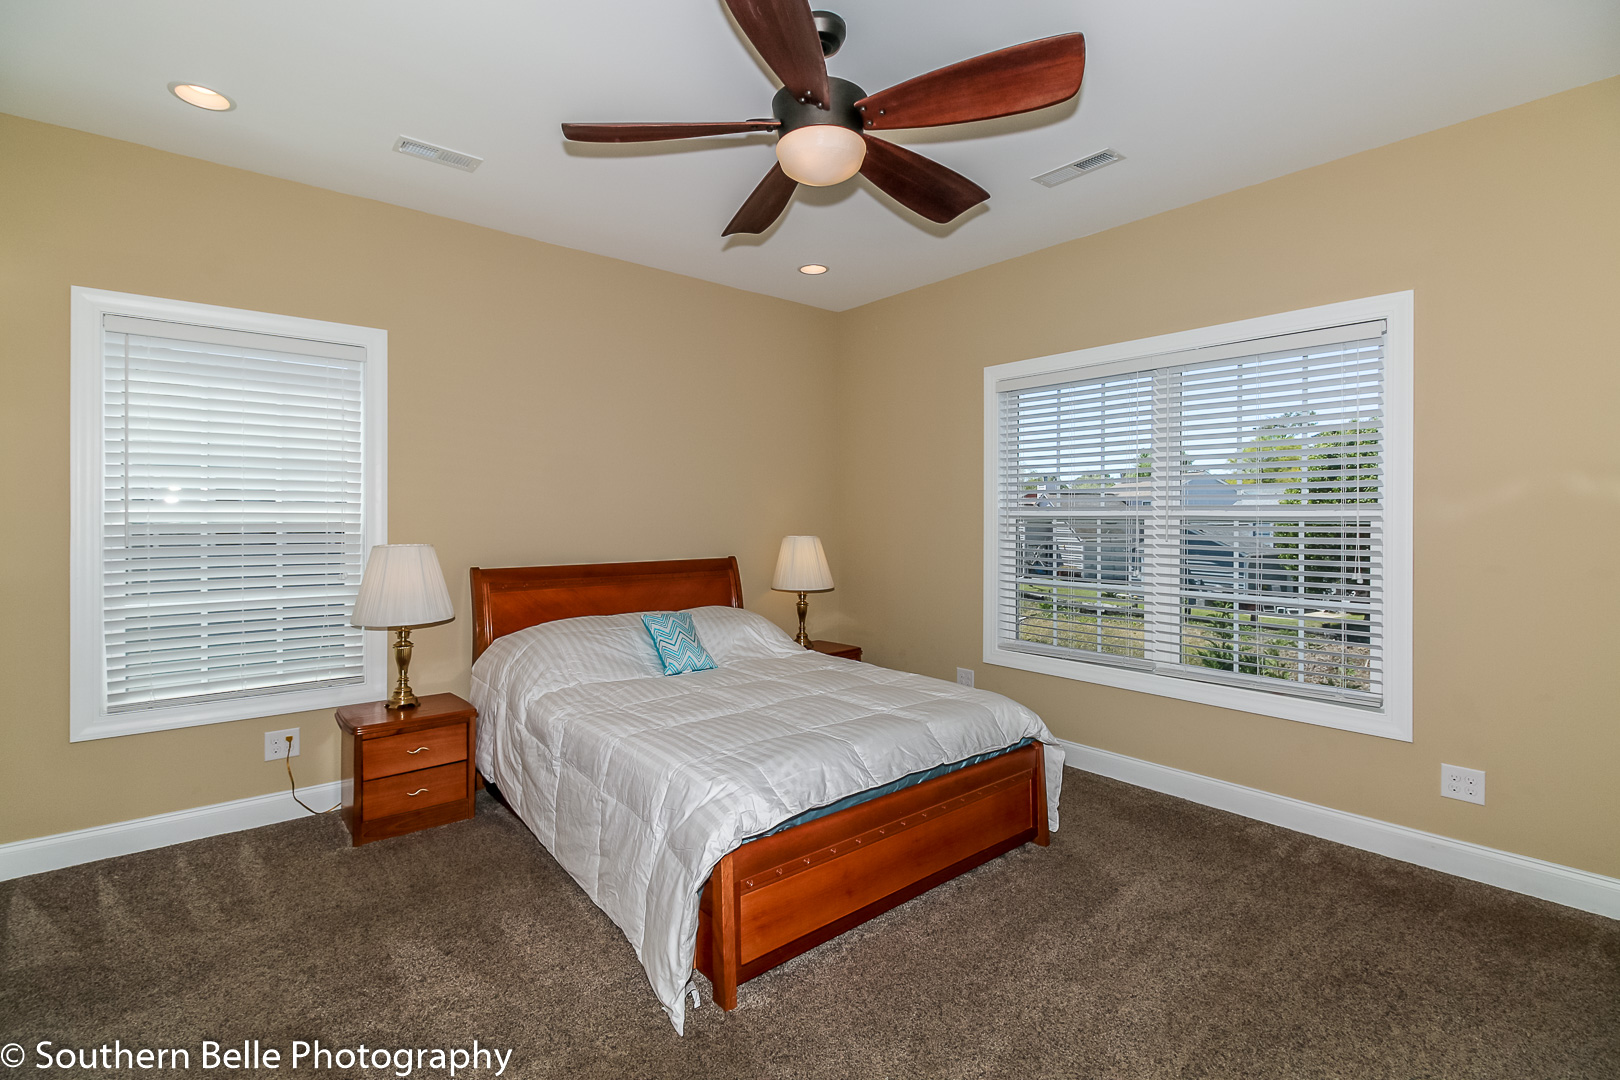 26. Master Bedroom WM